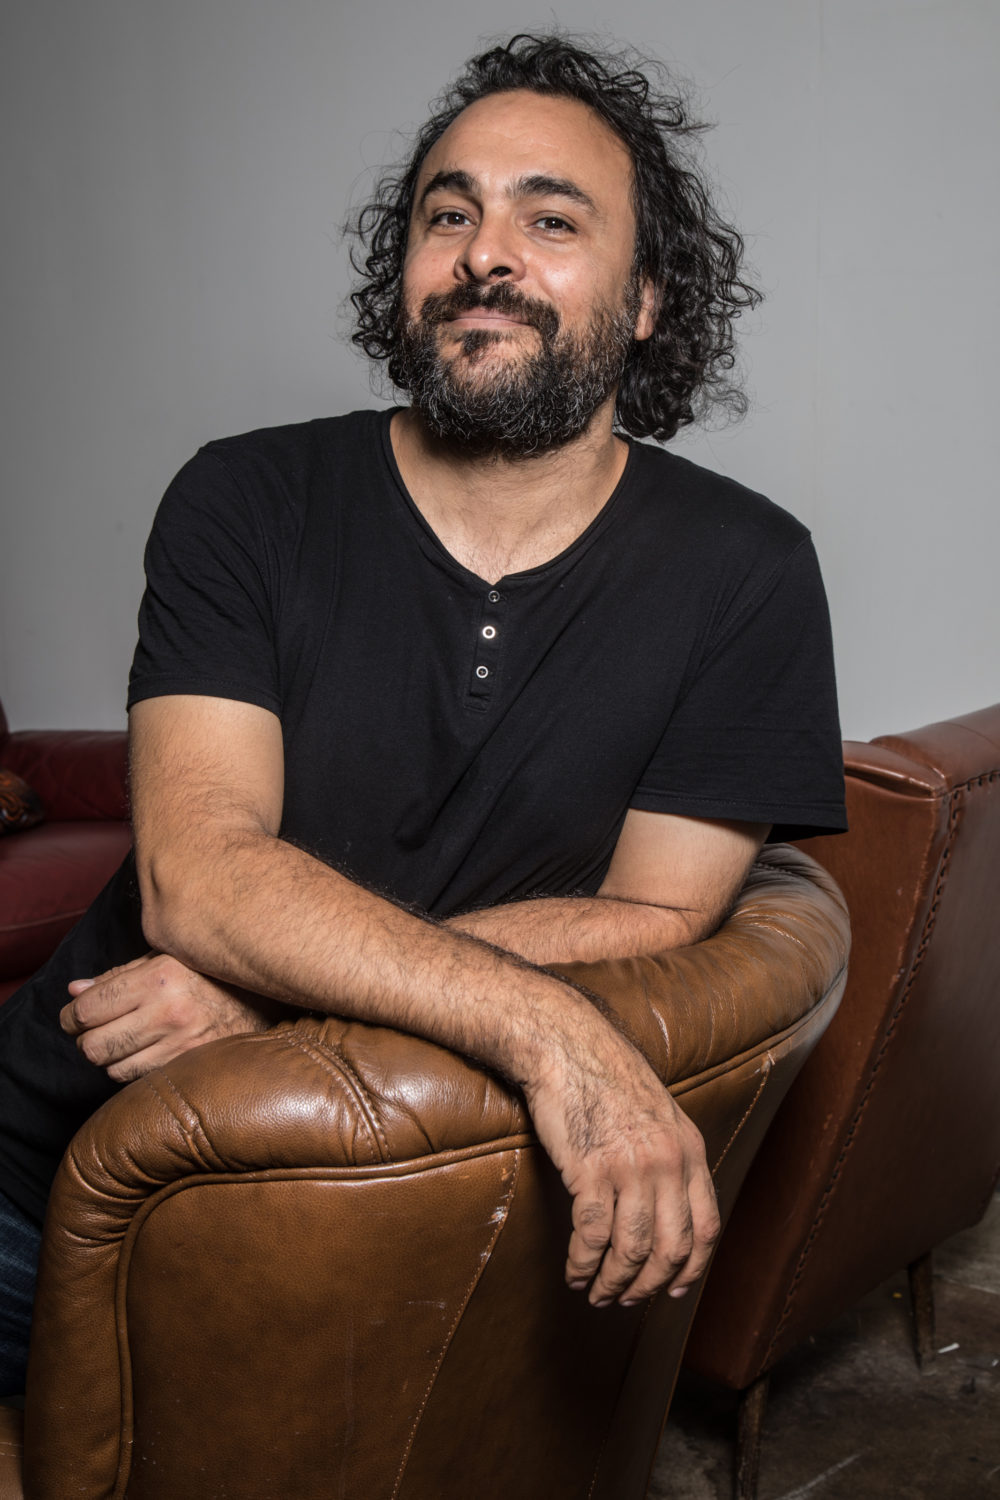 'We Need to Reinvent the 'Us'': Kader Attia on How Art Might Help Turn the Tide Against the Far Right